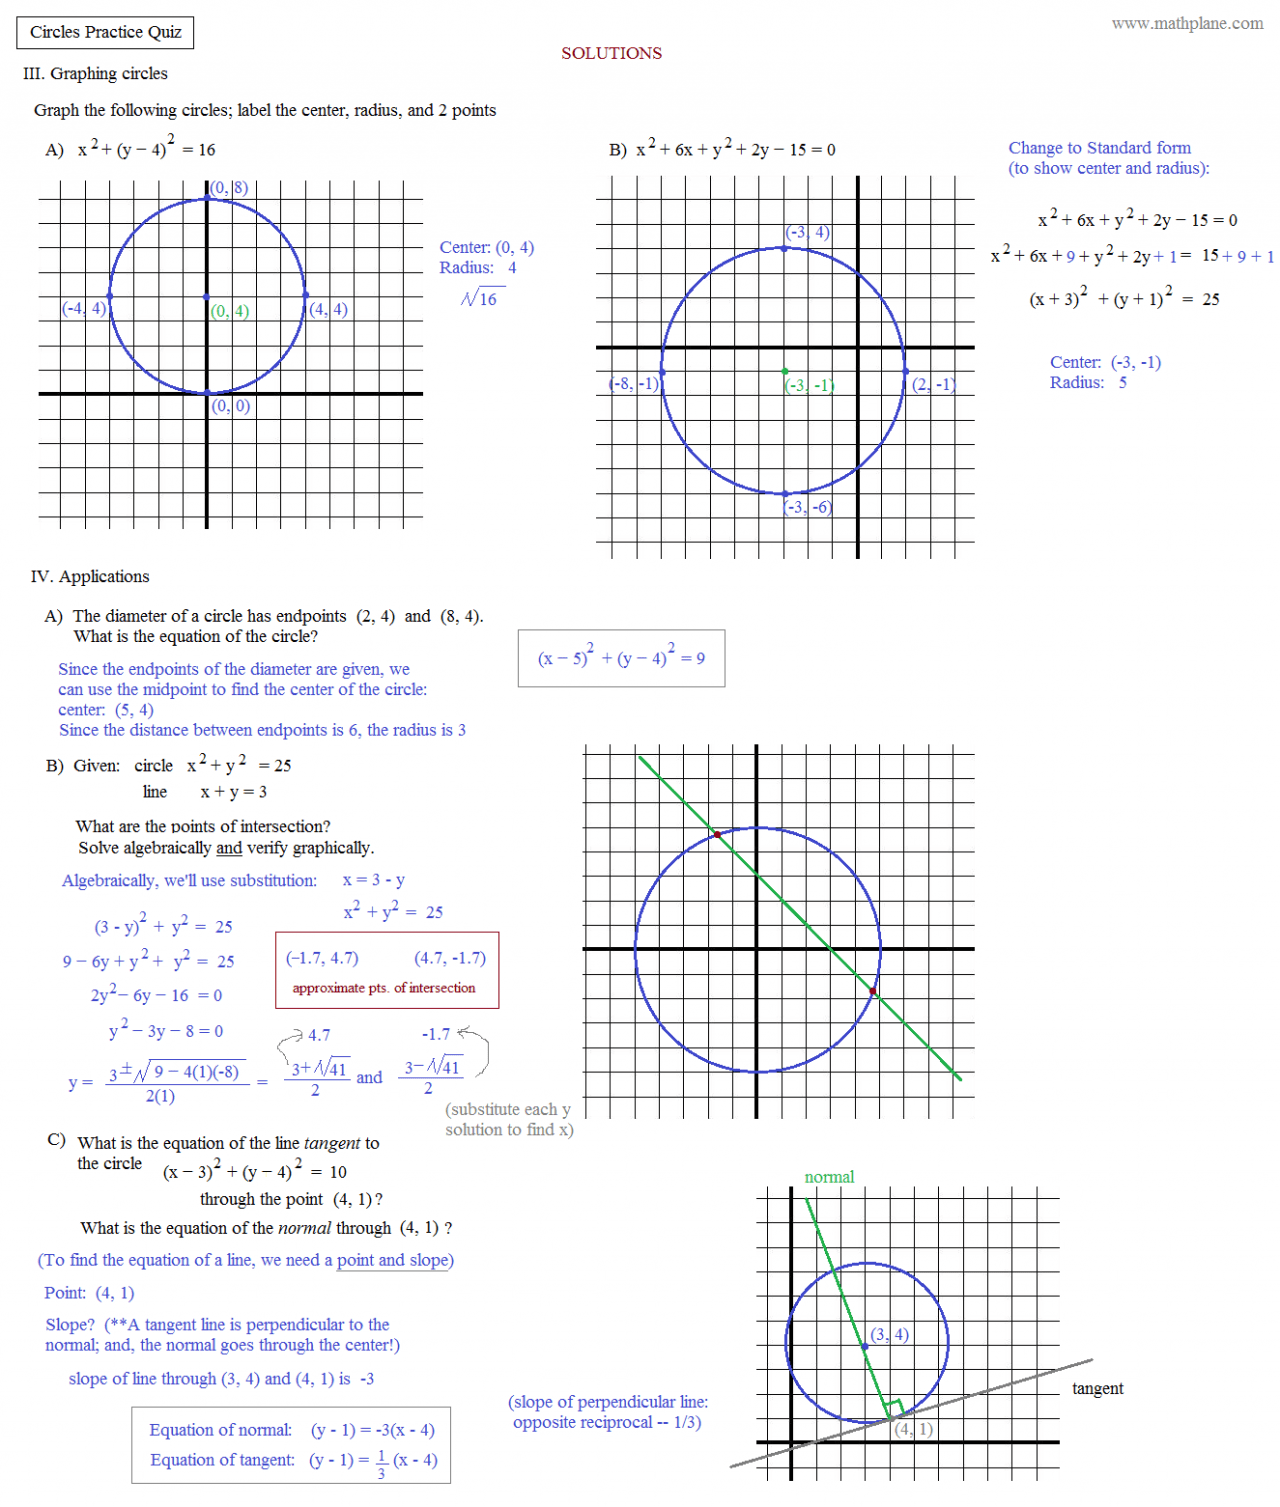 Graphing Calculator Worksheet 2 Graphing Worksheets Page 2 Of 3 Have Fun Teaching Graphing